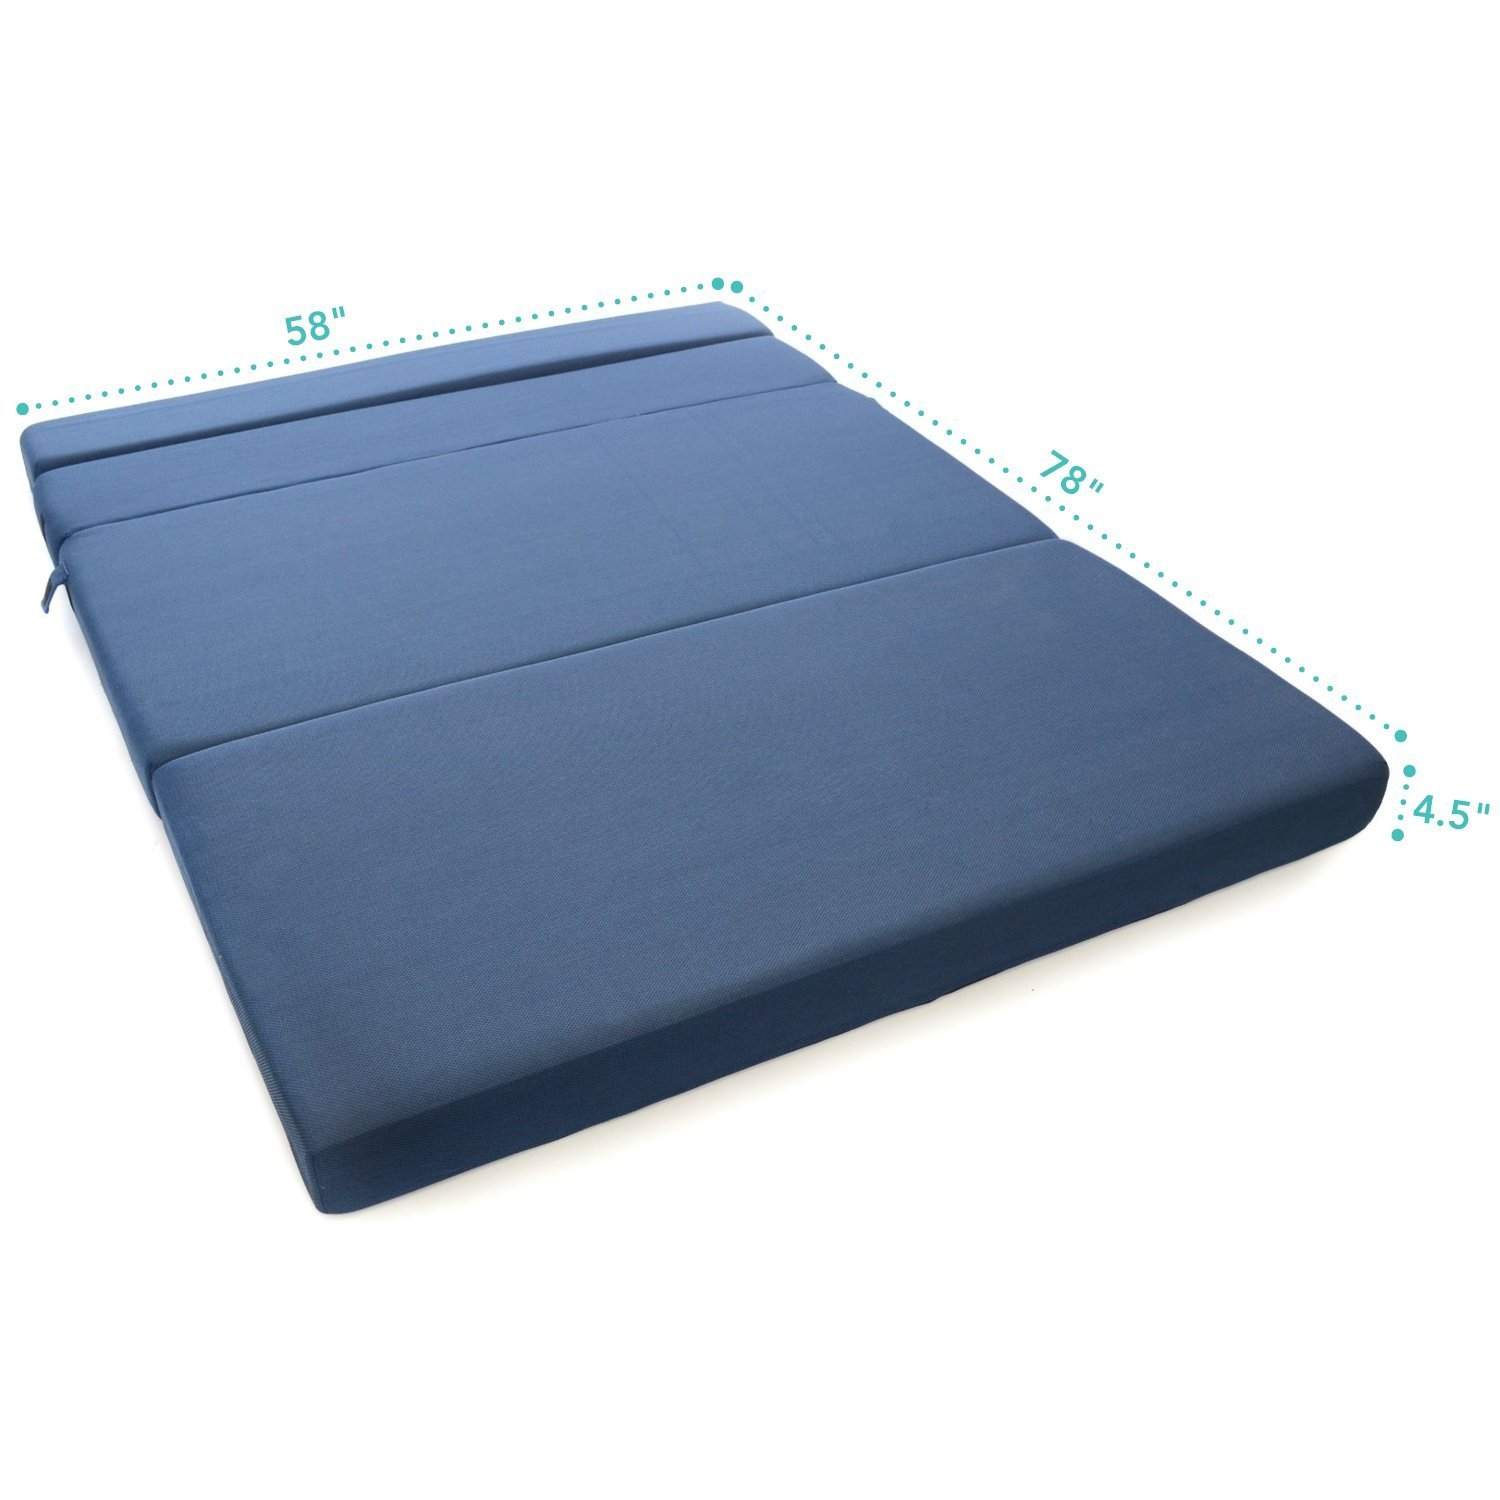 Tri fold foam folding mattress and sofa bed queen milliard bedding Where to buy mattress foam